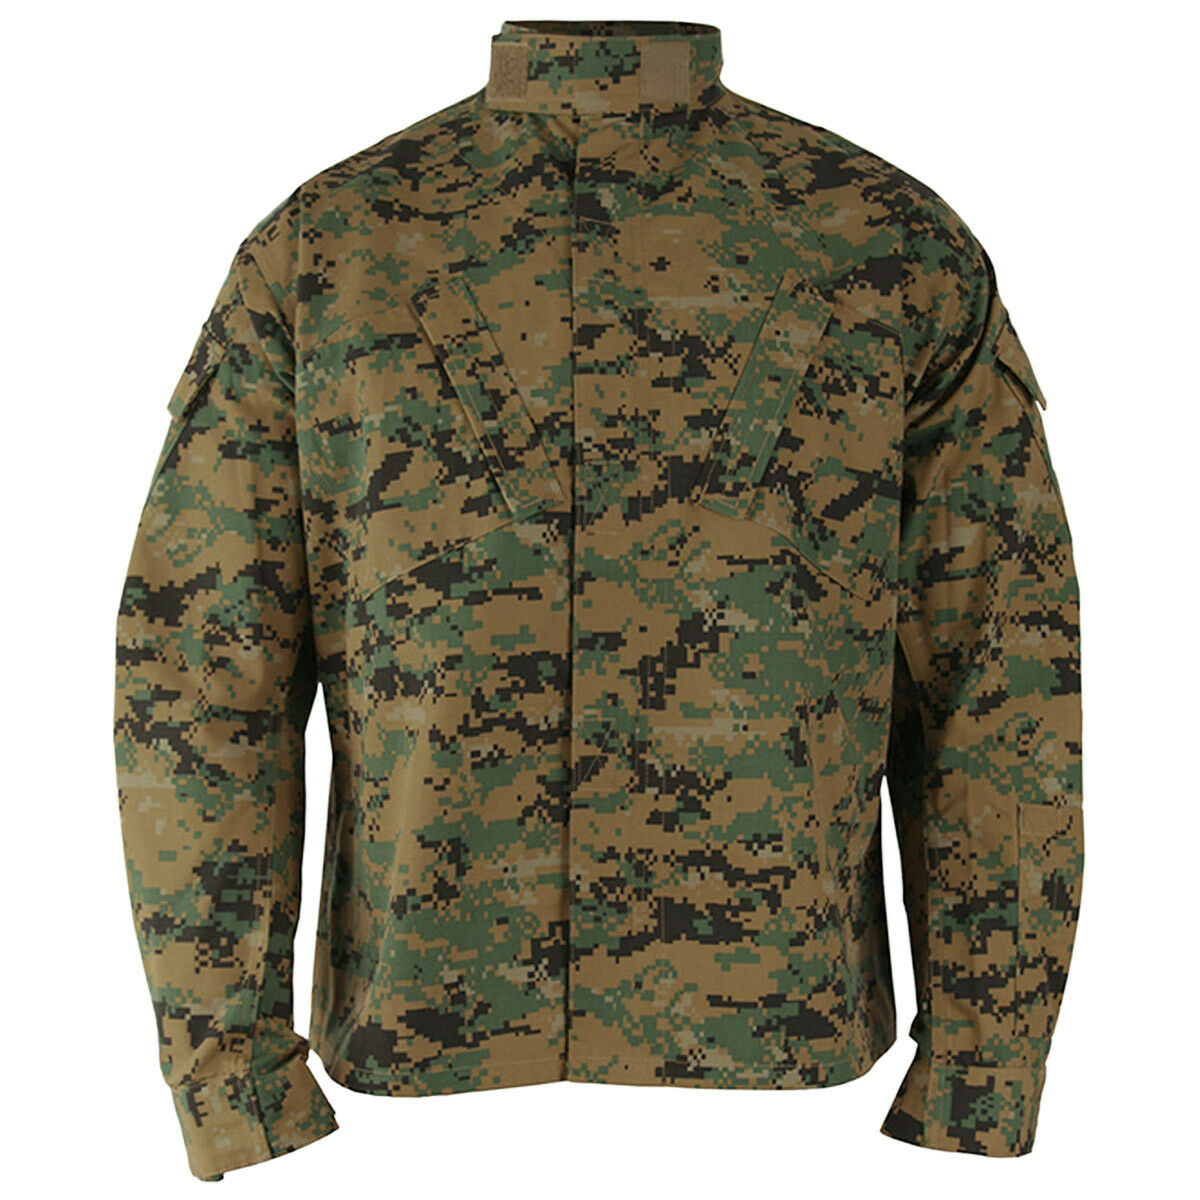 Propper ACU Coat Mens Tactical Teflon Cadet Patrol Shirt Digital Woodland Camo